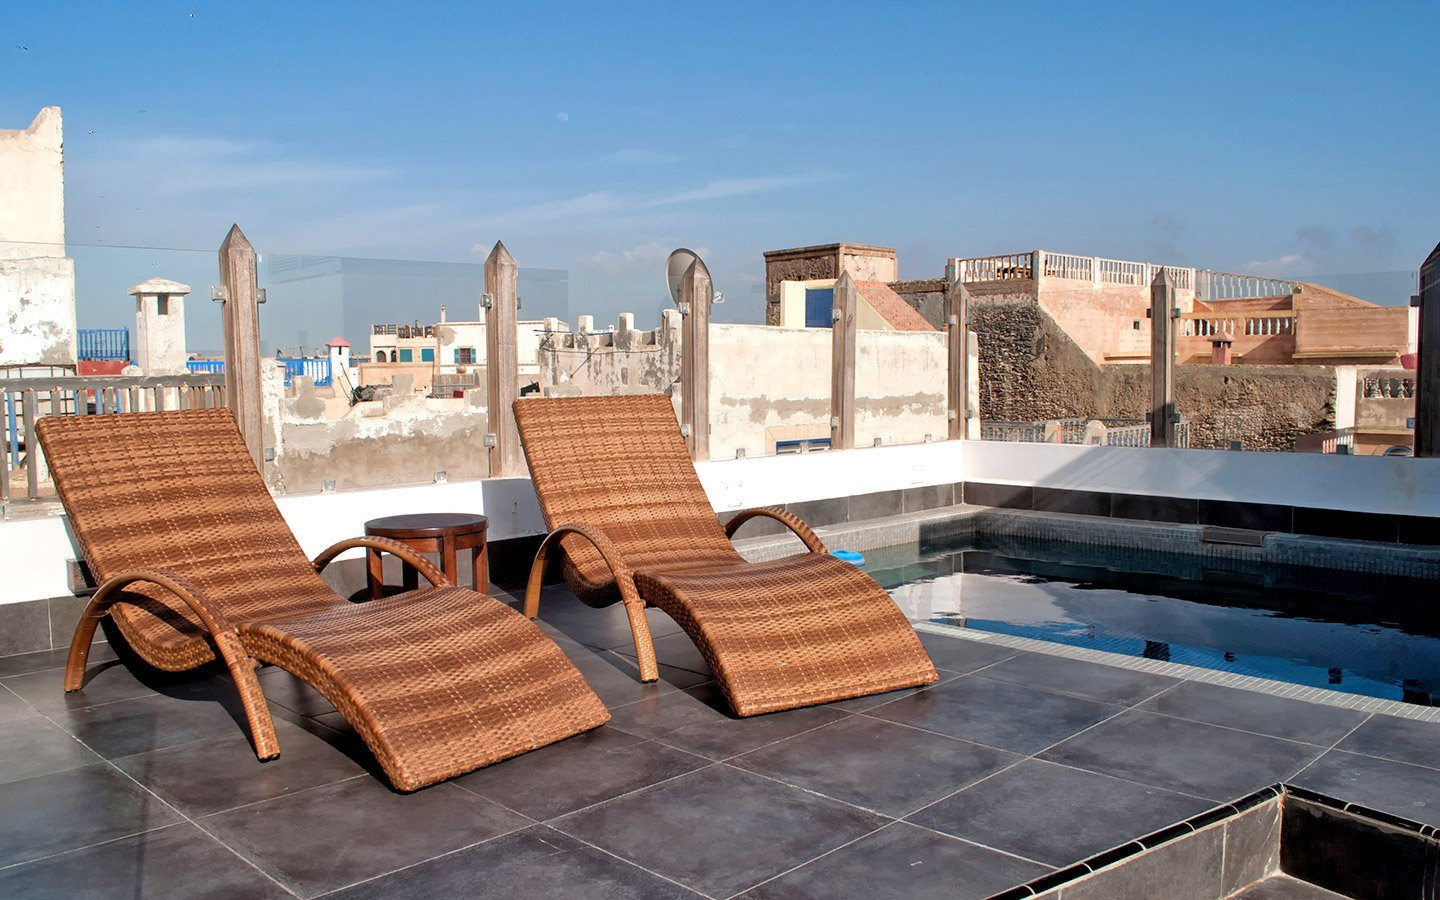 Roof terrace and pool at Riad dar Maya in Essaouira, Morocco